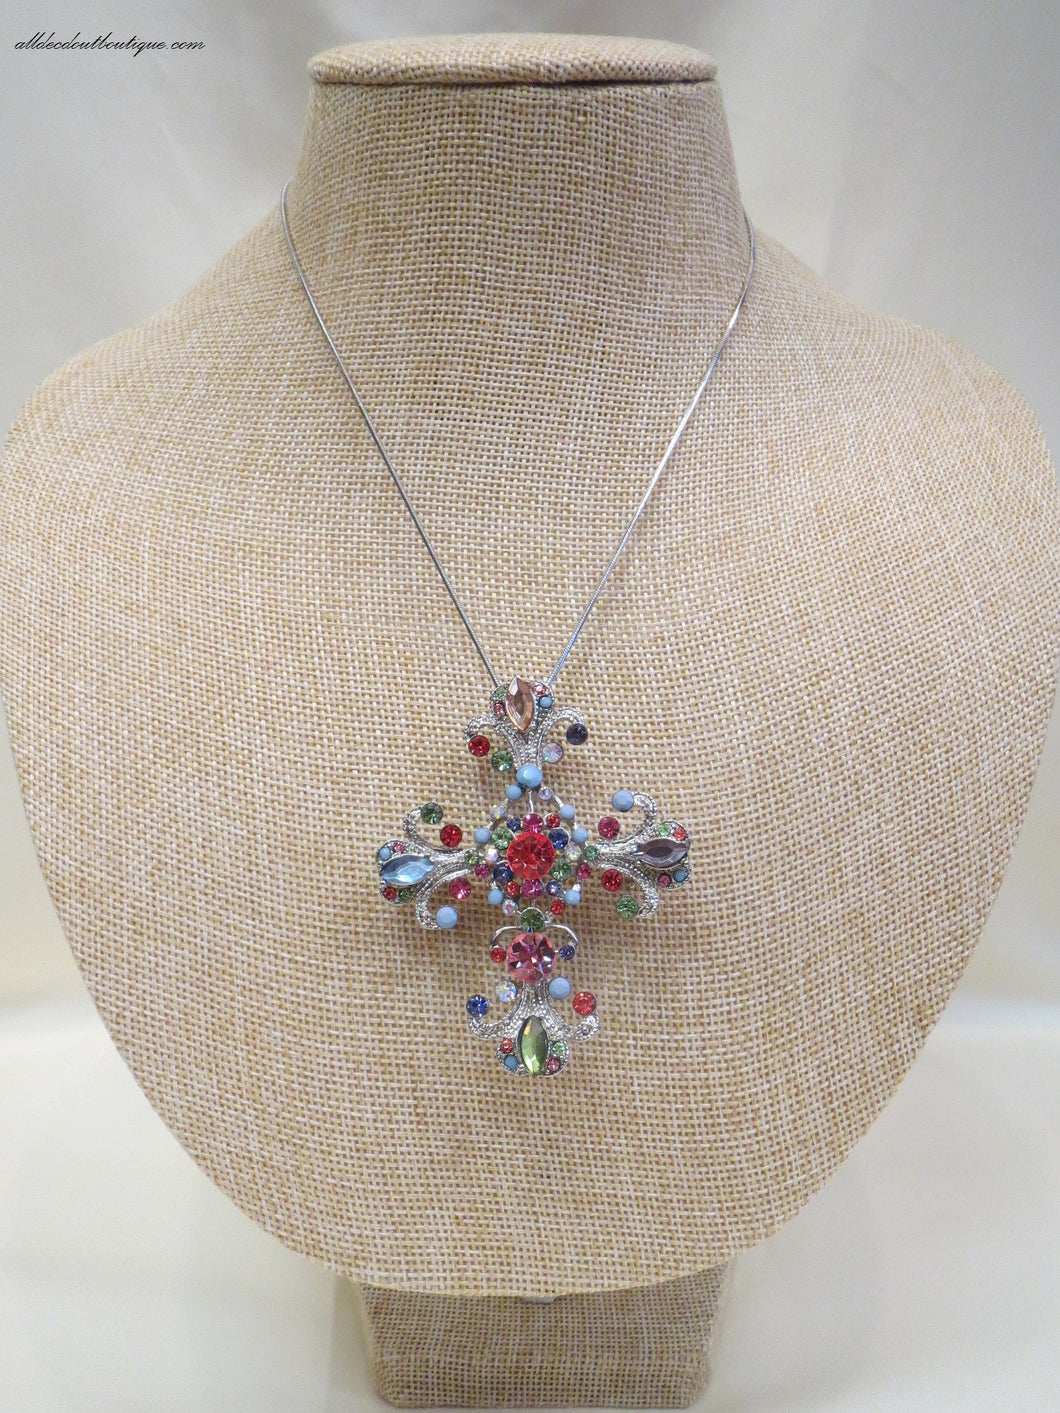 ADO | Necklace with Removable Cross Pendant - All Decd Out